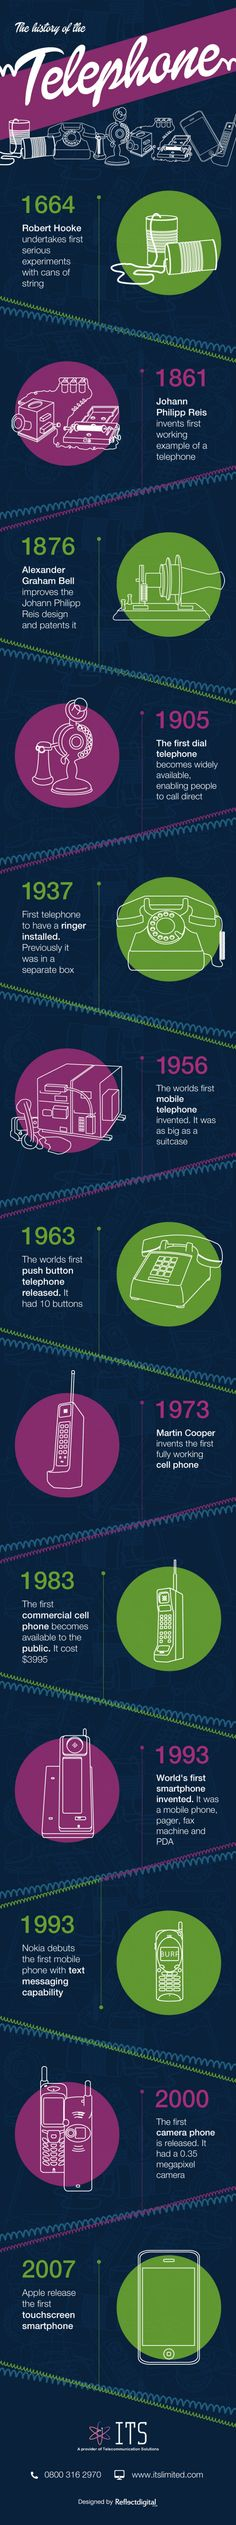 History of the Telephone System Infographic